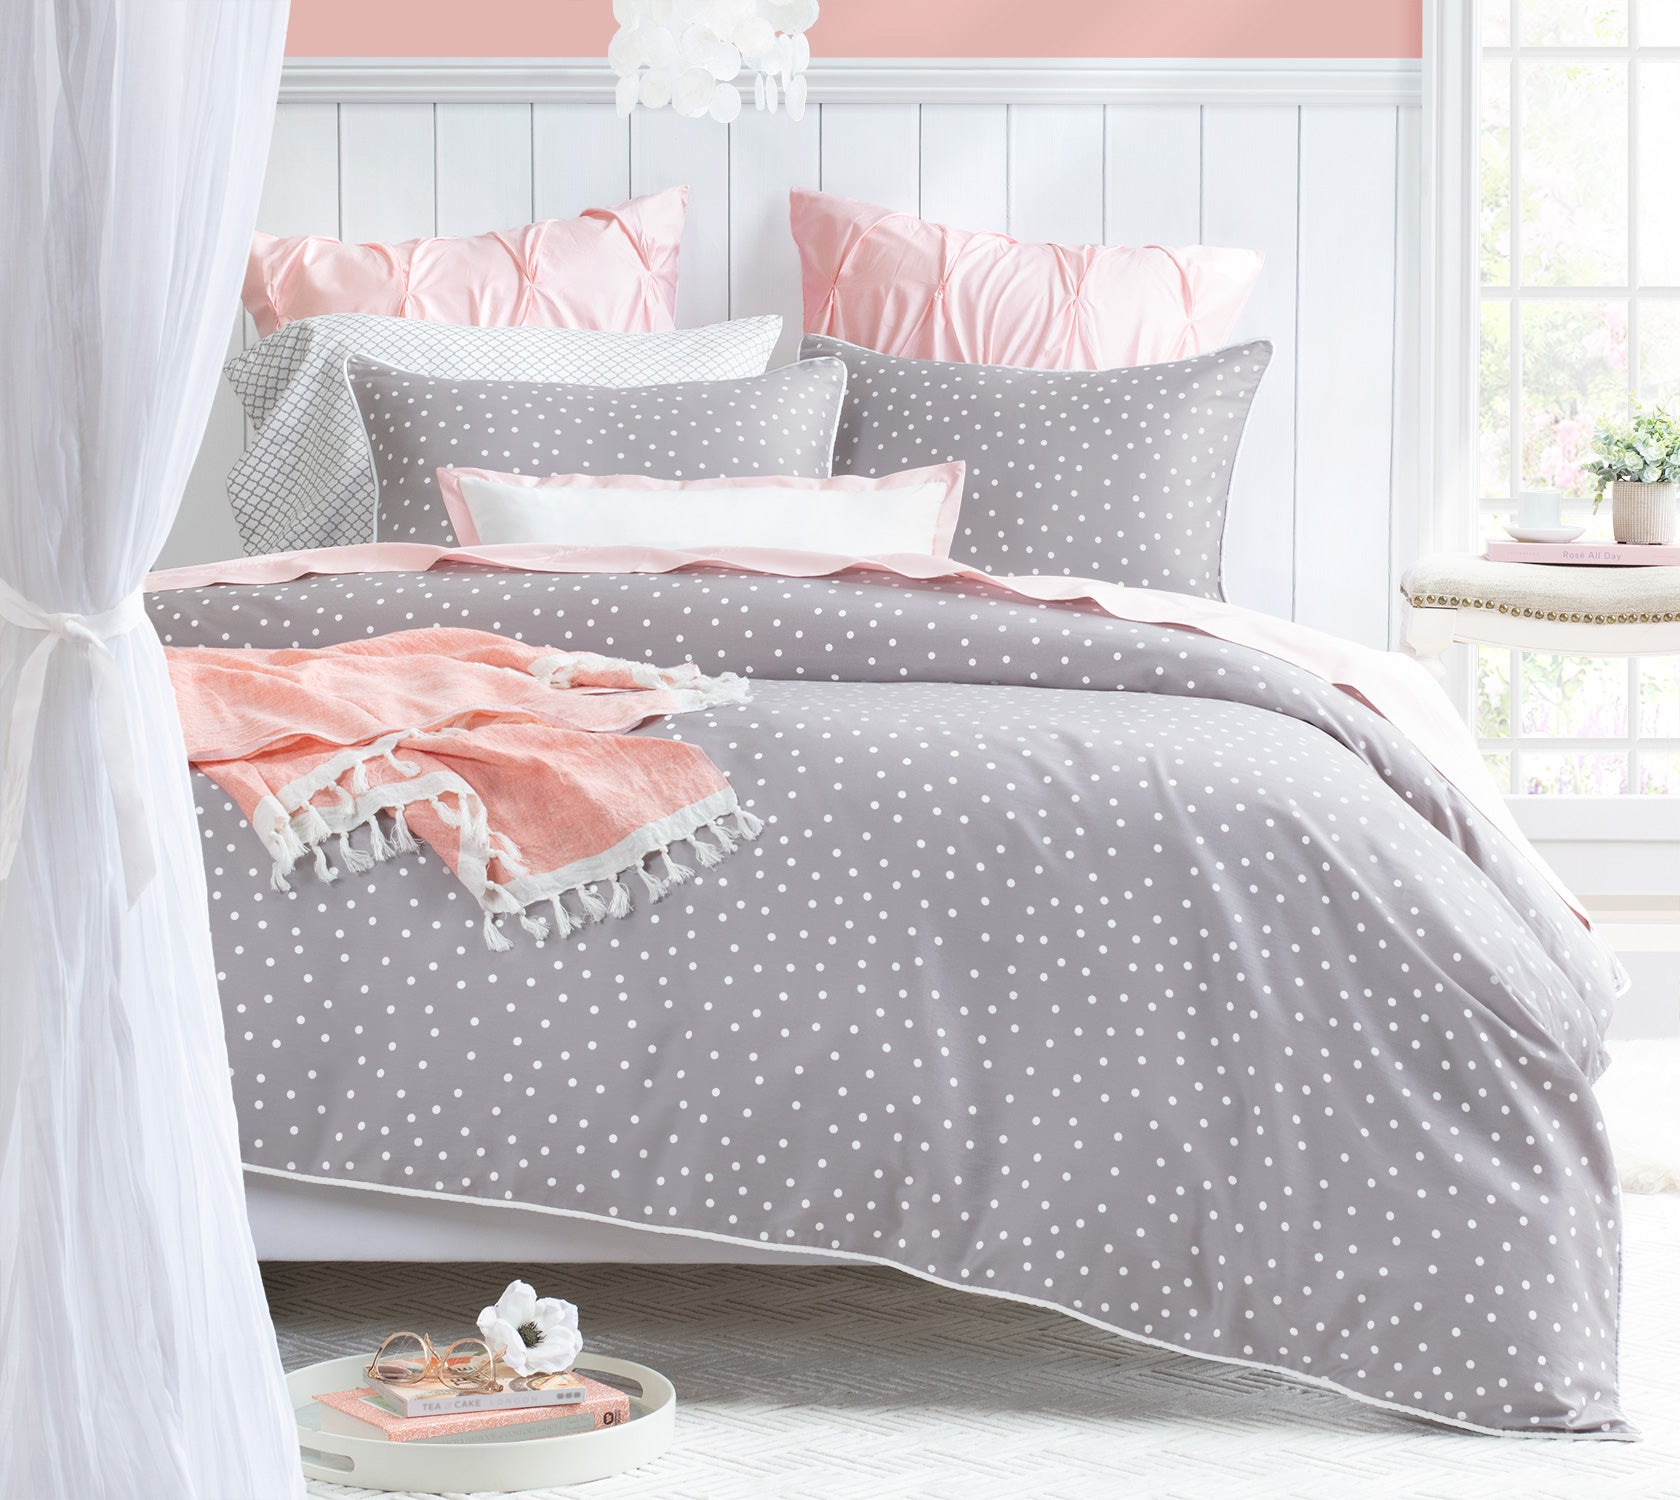 Grey and Pink Bedding